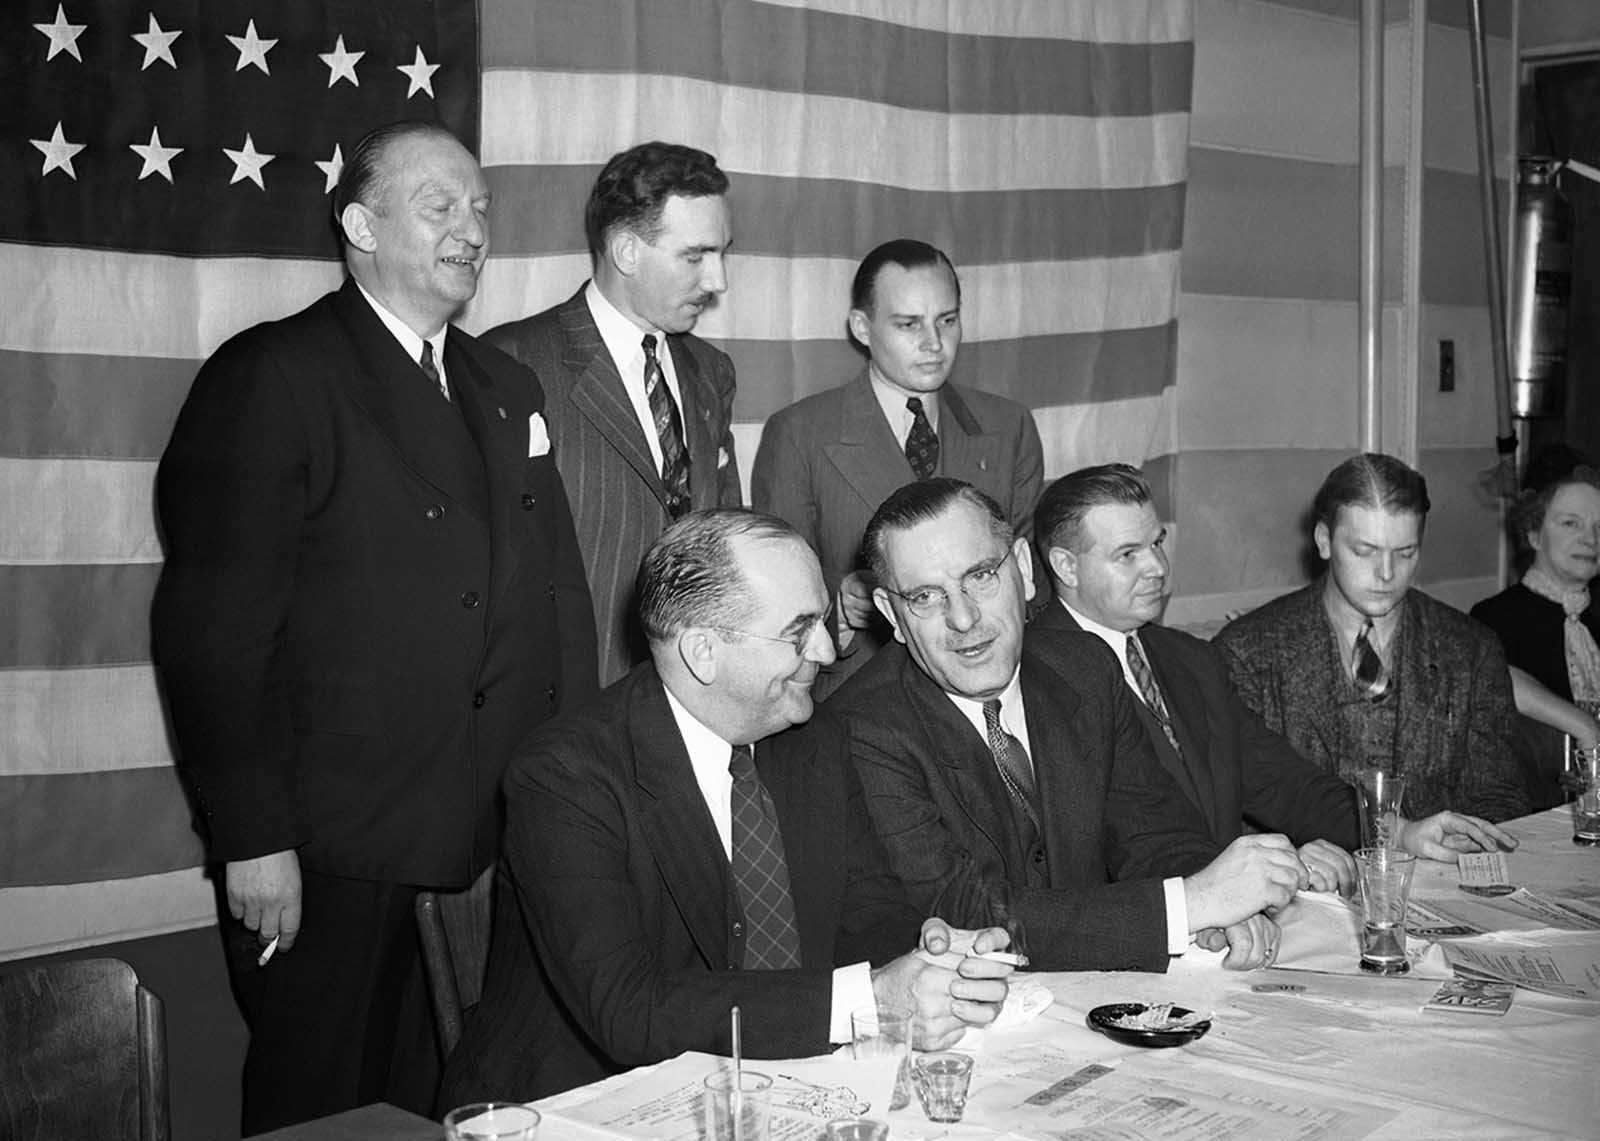 "German American Bund speakers and officers in front of an American flag at a ""patriotic dinner"" in New York, on September 25, 1939 at which President Roosevelt's neutrality recommendations were denounced. From left, seated Wilbur Keegan, New Jersey attorney who urged members to profess their loyalty to the United States; Fritz Kuhn, Bund fuehrer; and William Meyer, who said the Bund would continue to fight for a ""real nationalistic America"". Standing: Gustave Elmer, William Kunze and James Wheeler-Hill, Bund officials."